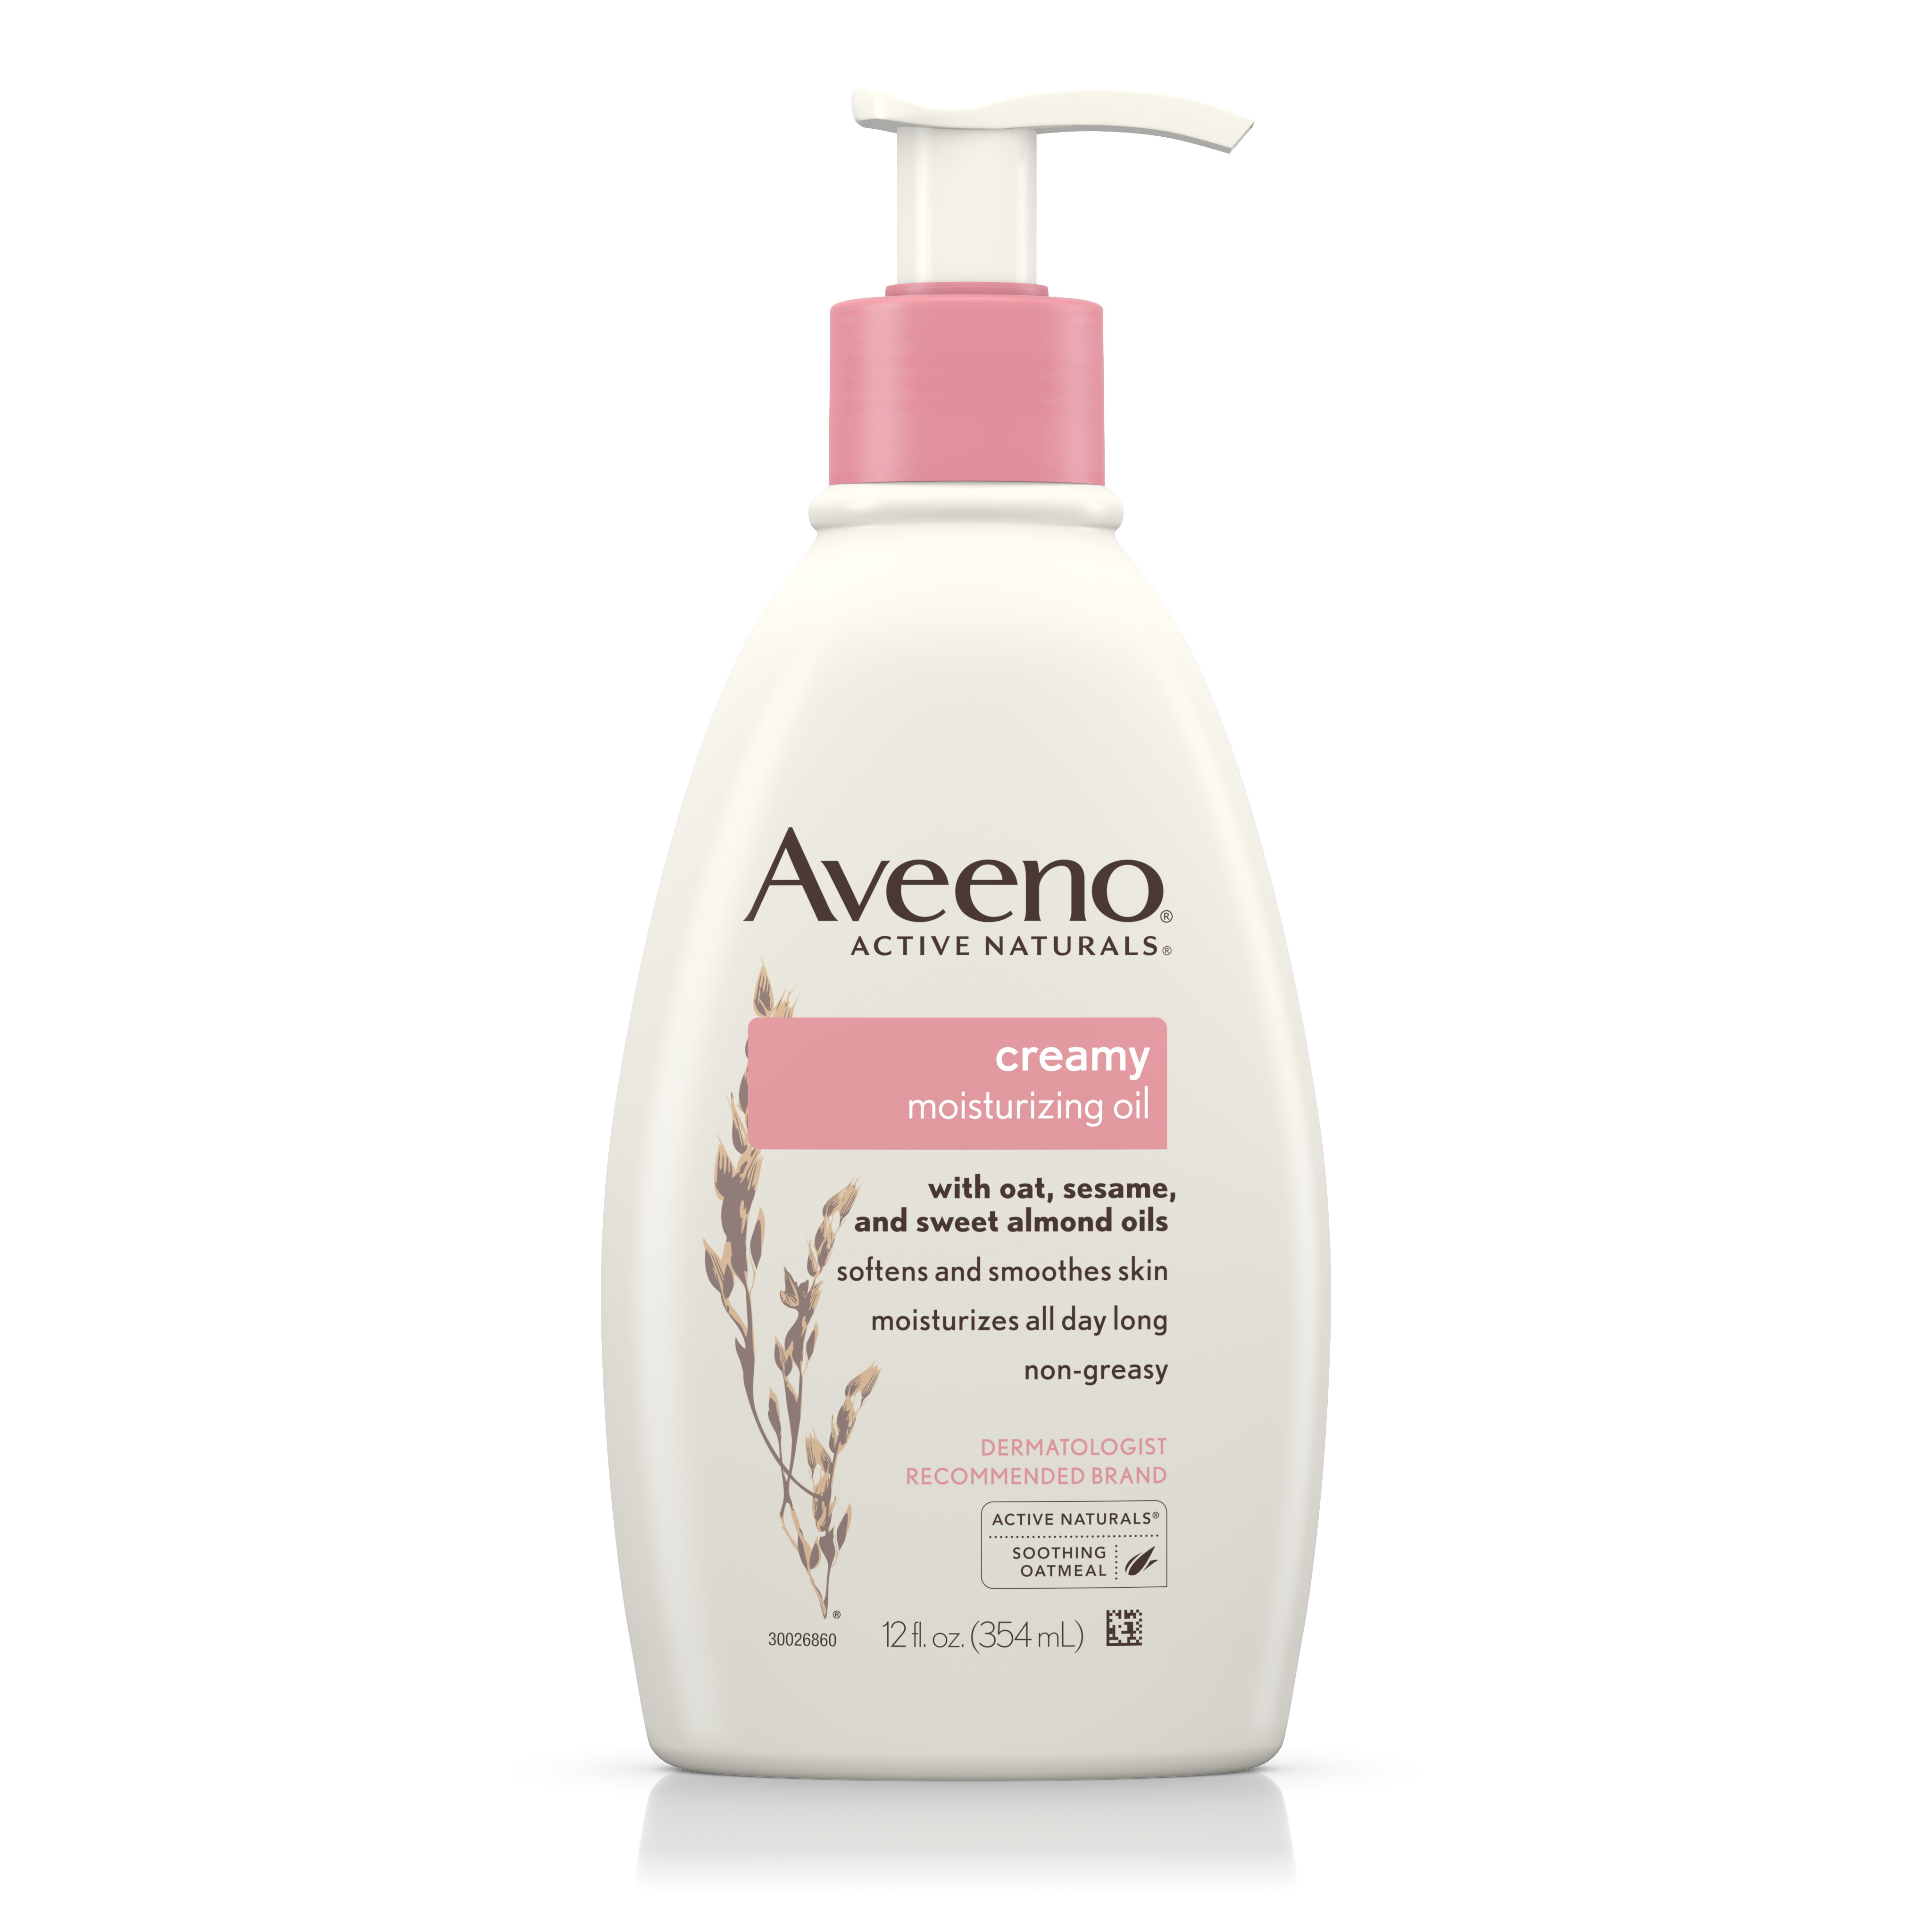 Aveeno Creamy Moisturizing Body Oil For Dry Skin, 12 Fl. Oz - Walmart.com